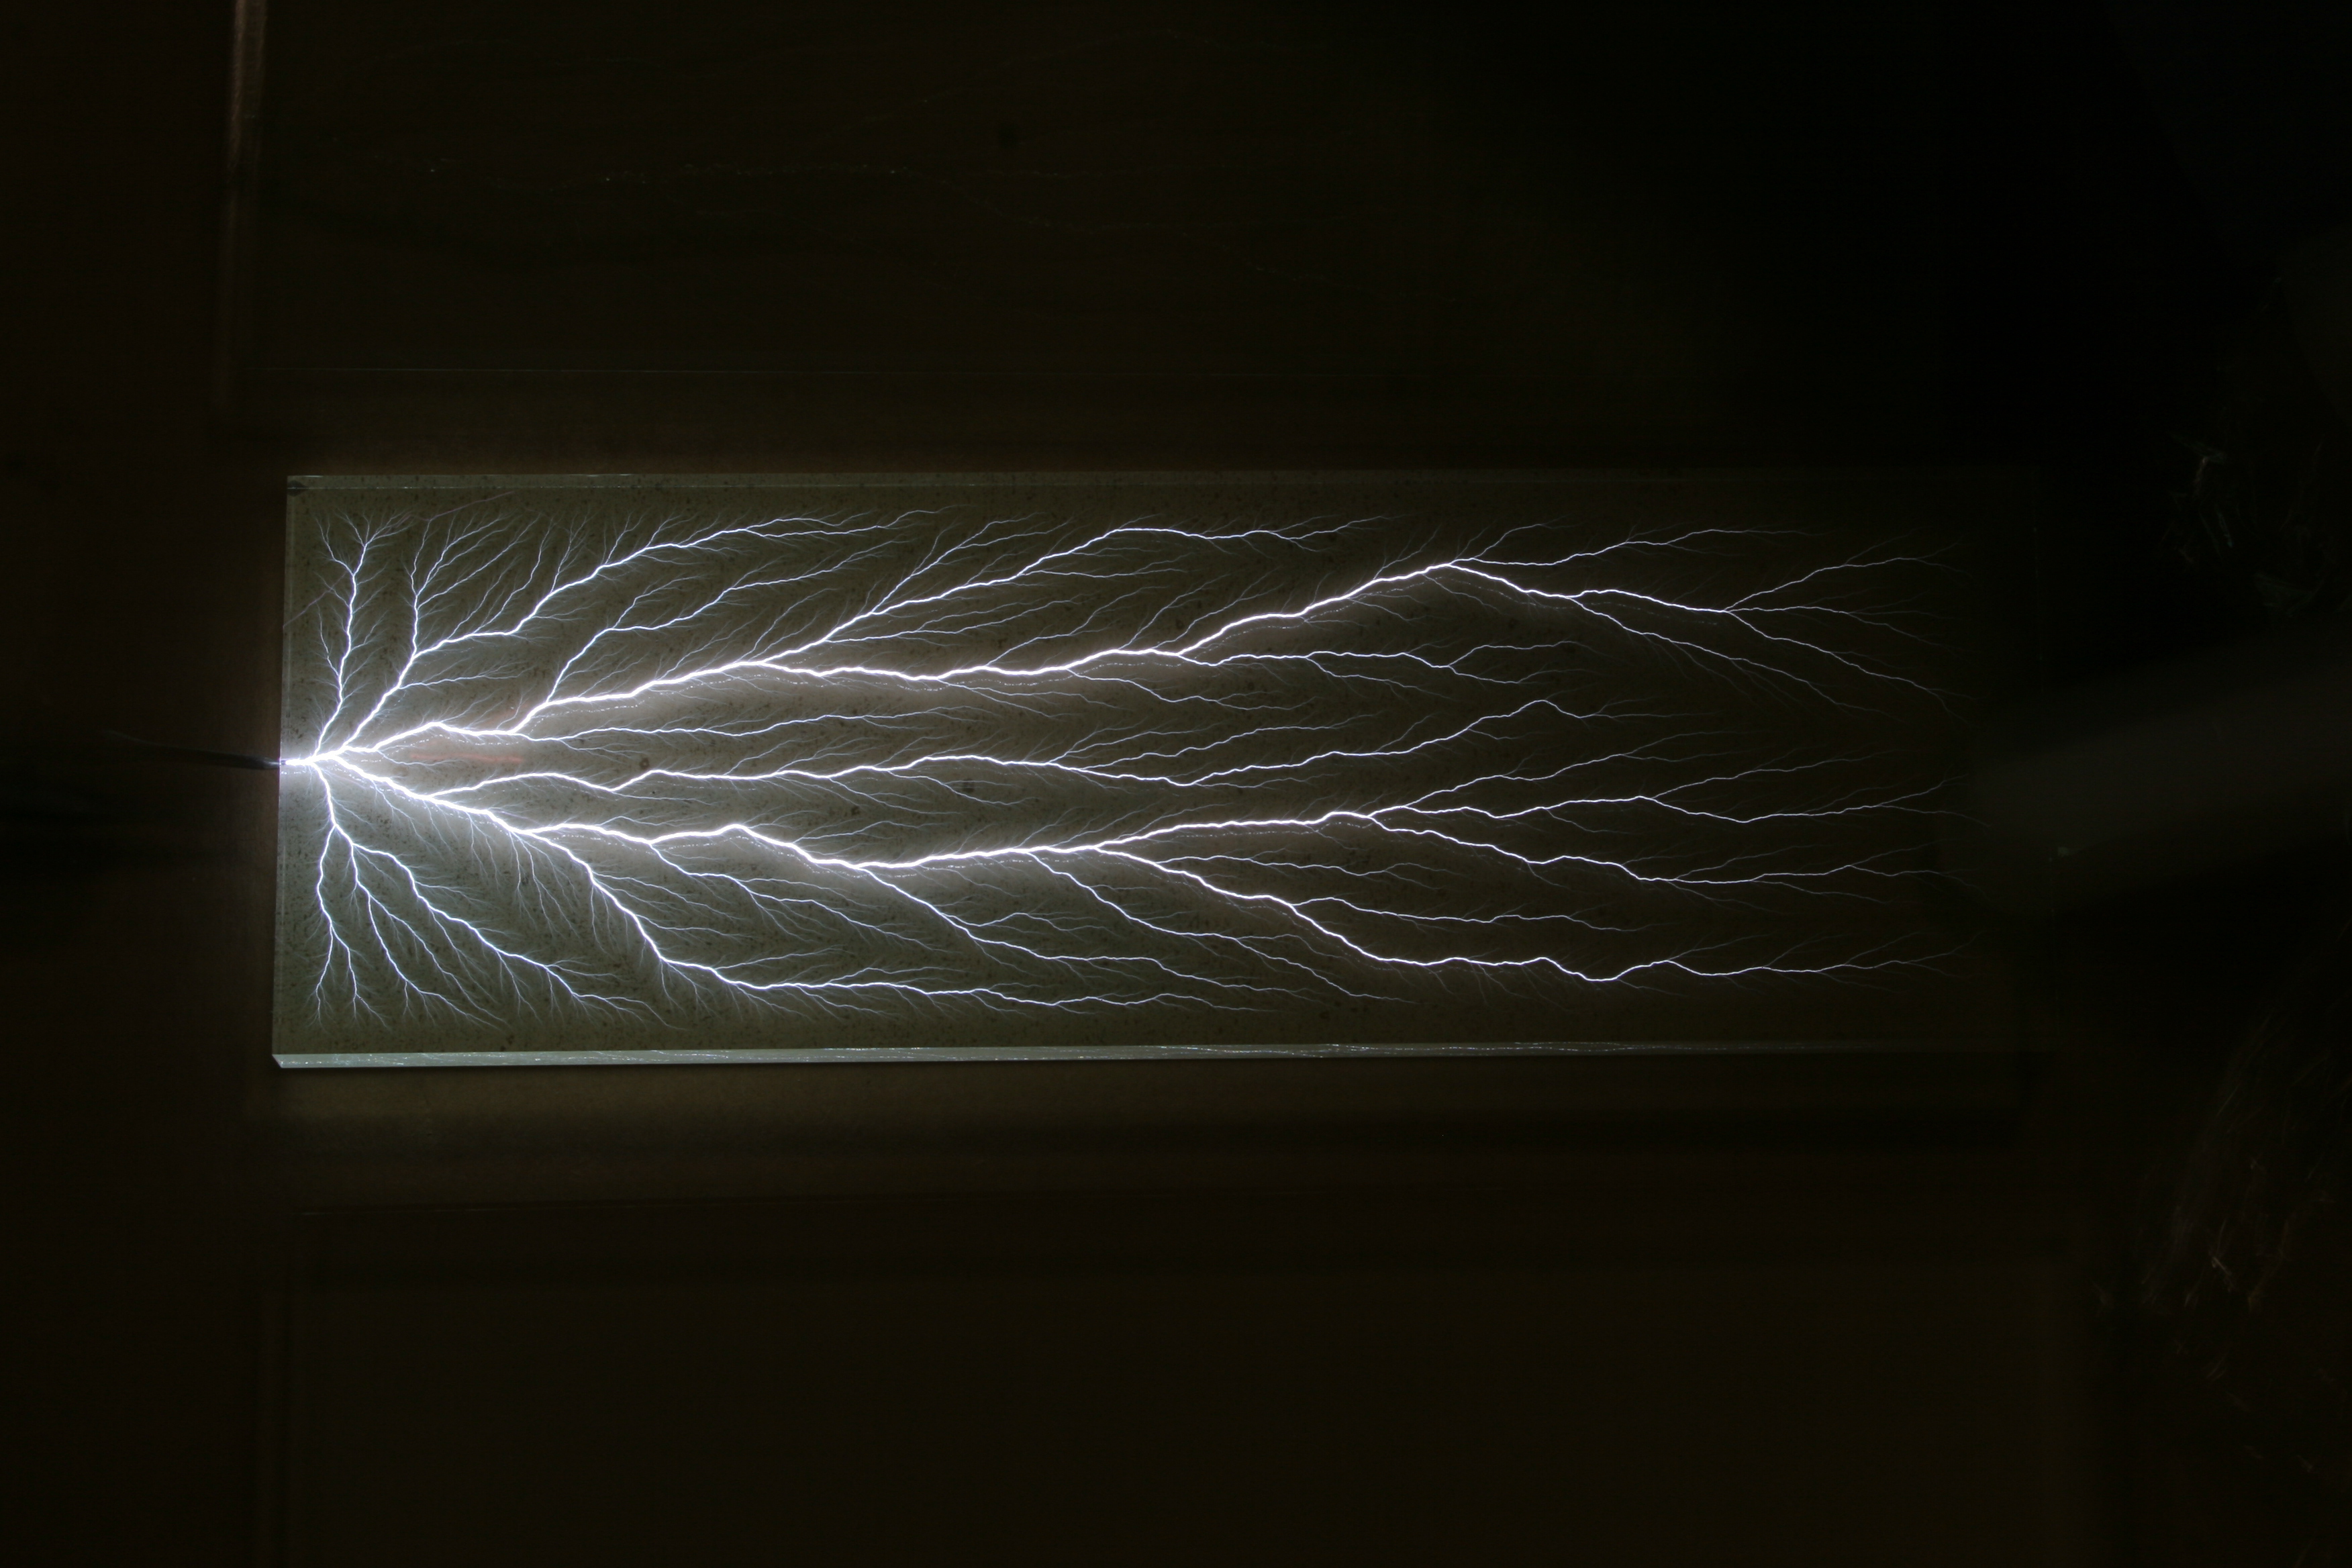 A charged . . . specimen of acrylic plastic being discharged to form a 'captured lightning' Lichtenberg figure. . . . A particle accelerator was used to charge up the interior of the specimen to over 1.7 million volts. Photo credit: Bert Hickman, Stoner